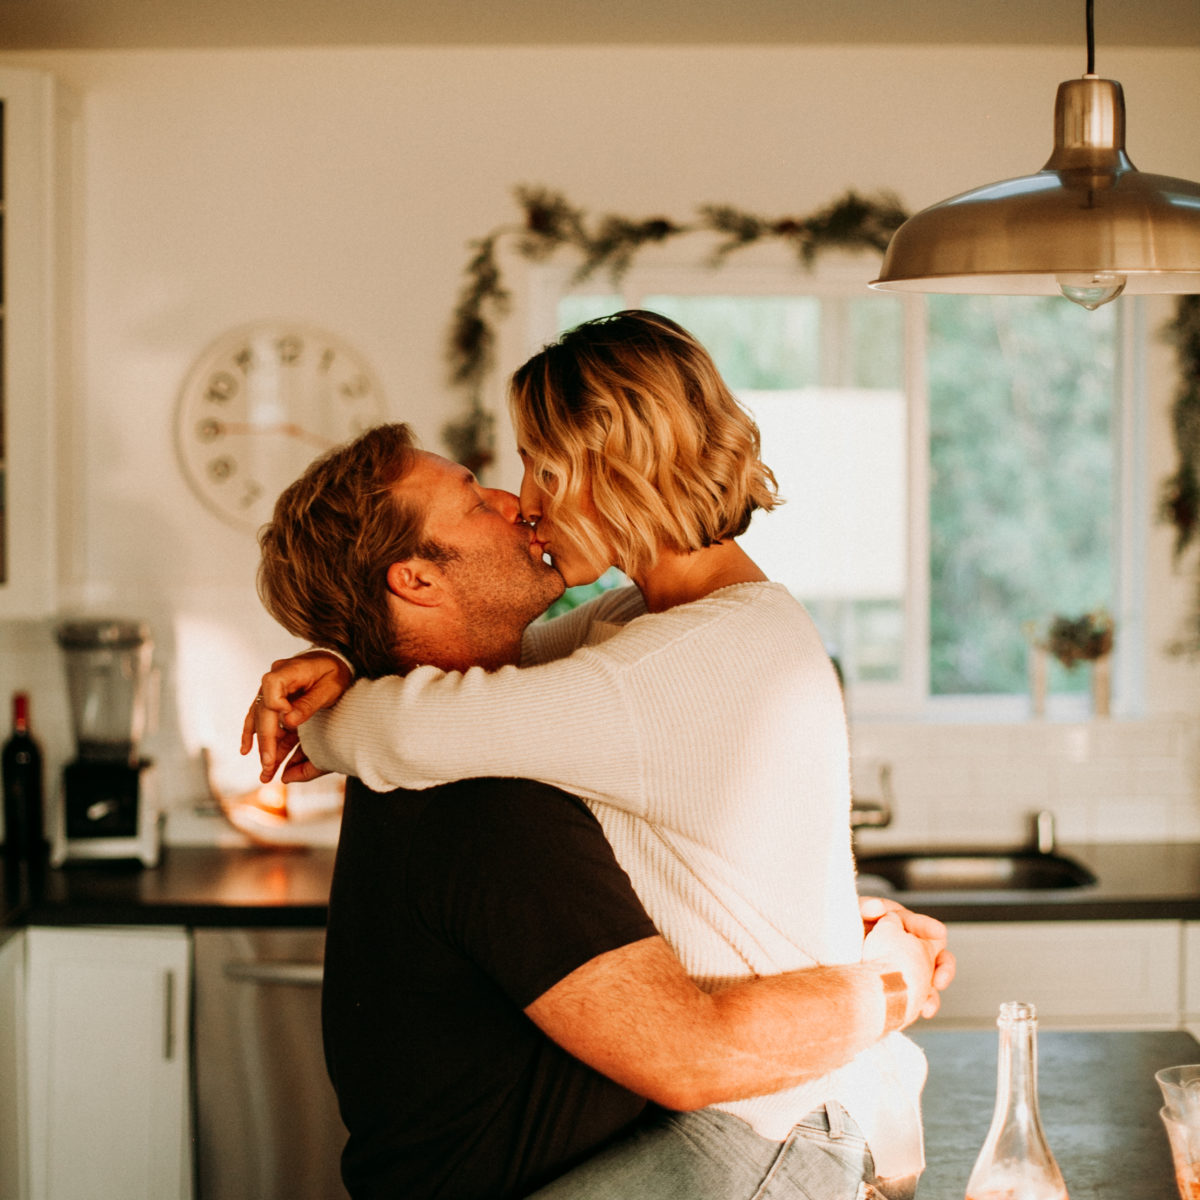 How To Keep The Flame Alive in Your Marriage